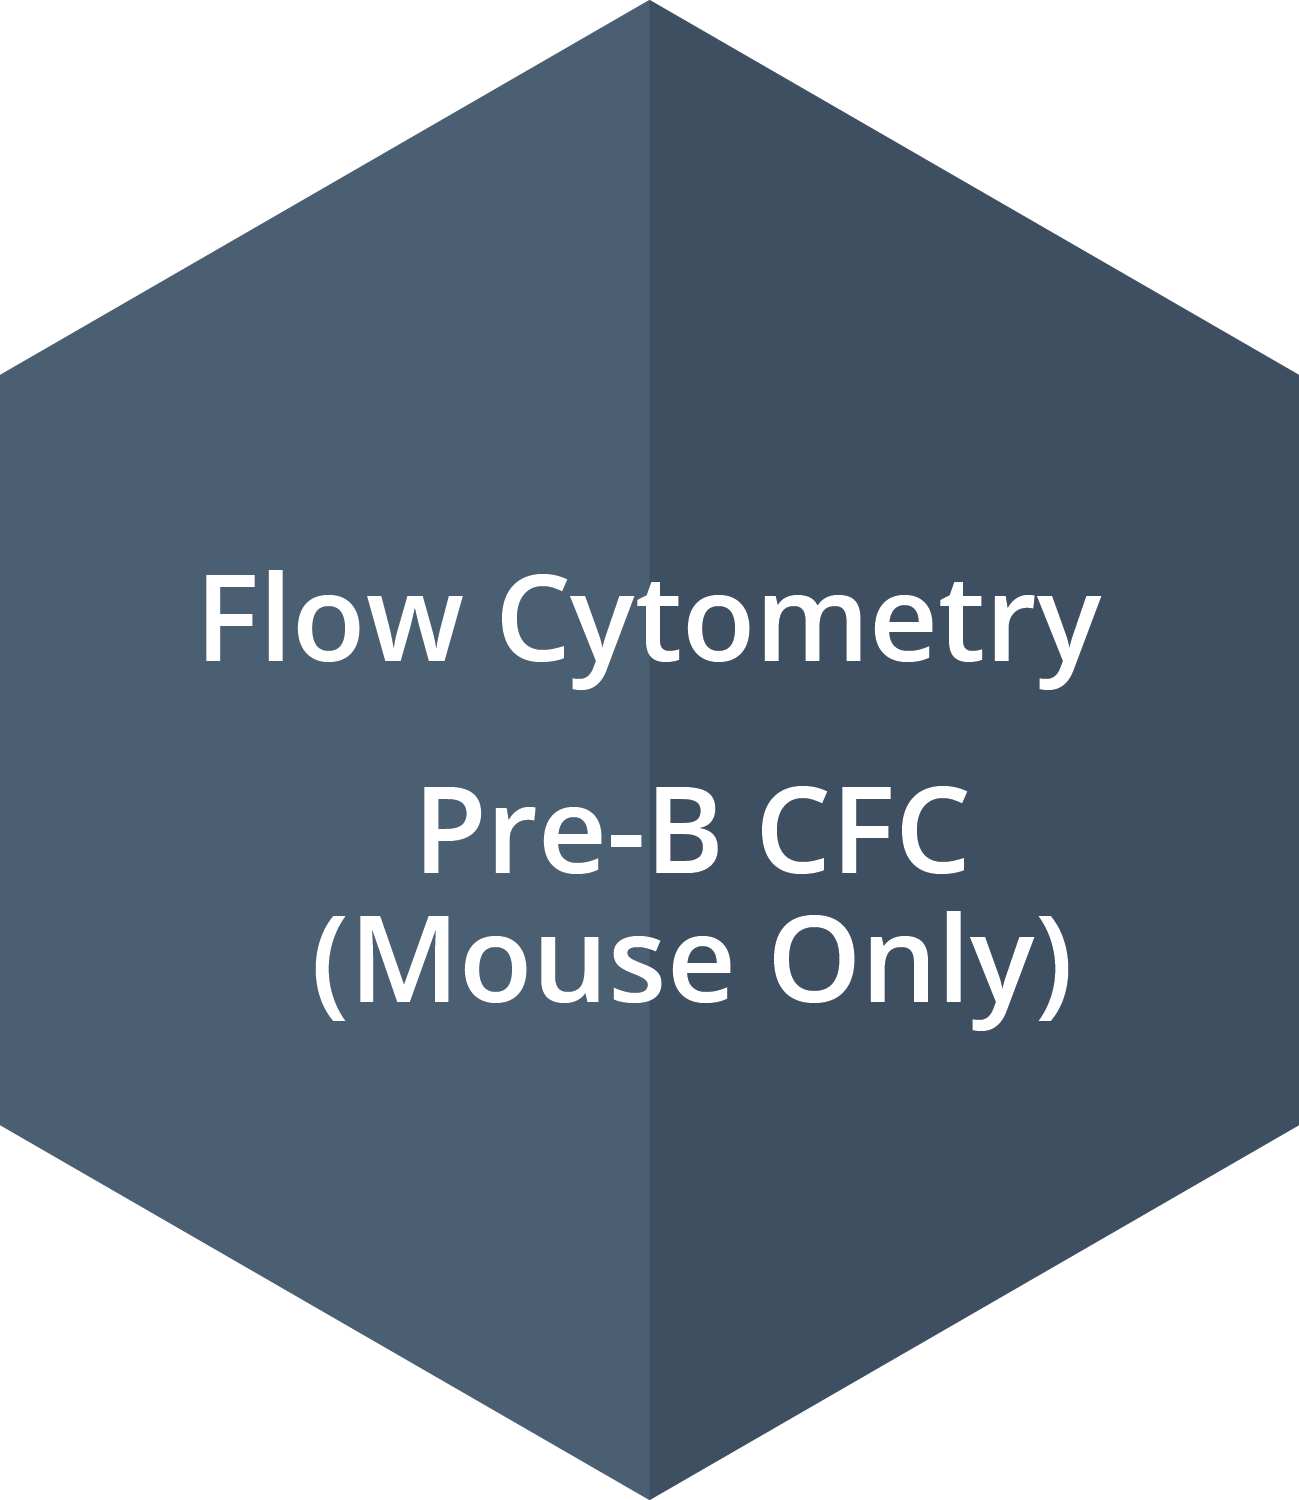 Flow Cytometry, Pre-B CFC (Mouse Only)